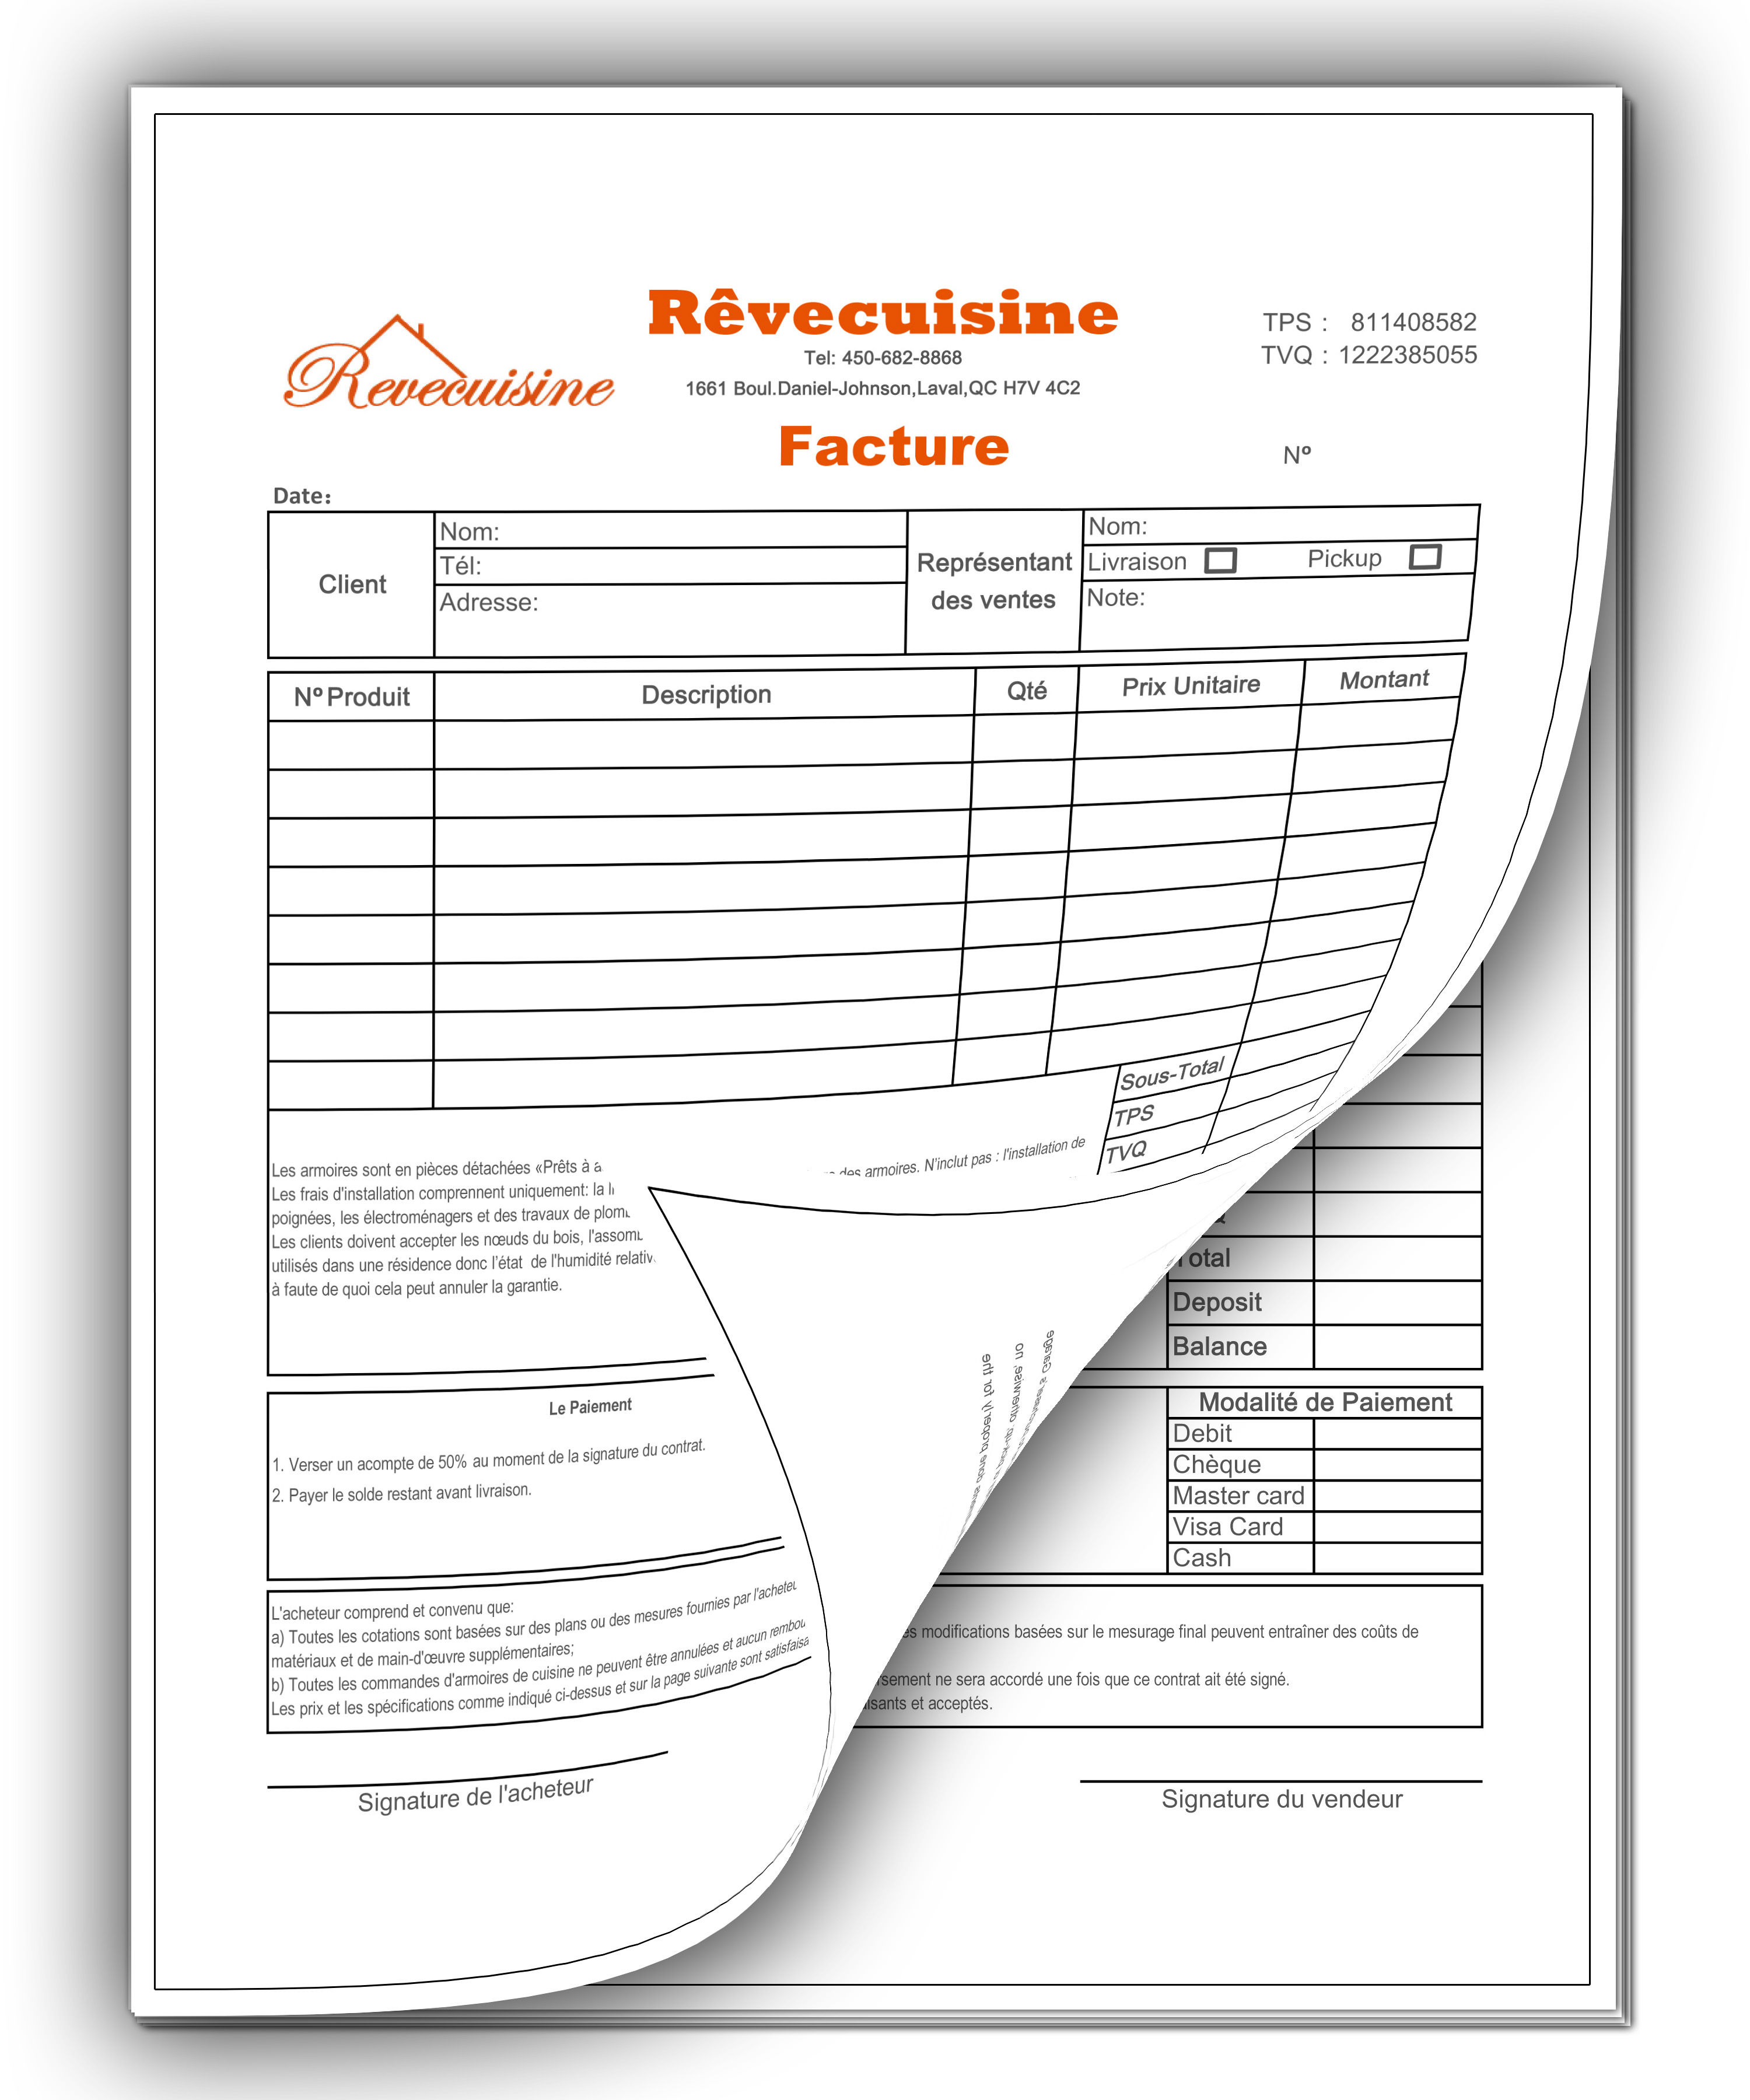 NCR Form (invoice) printing